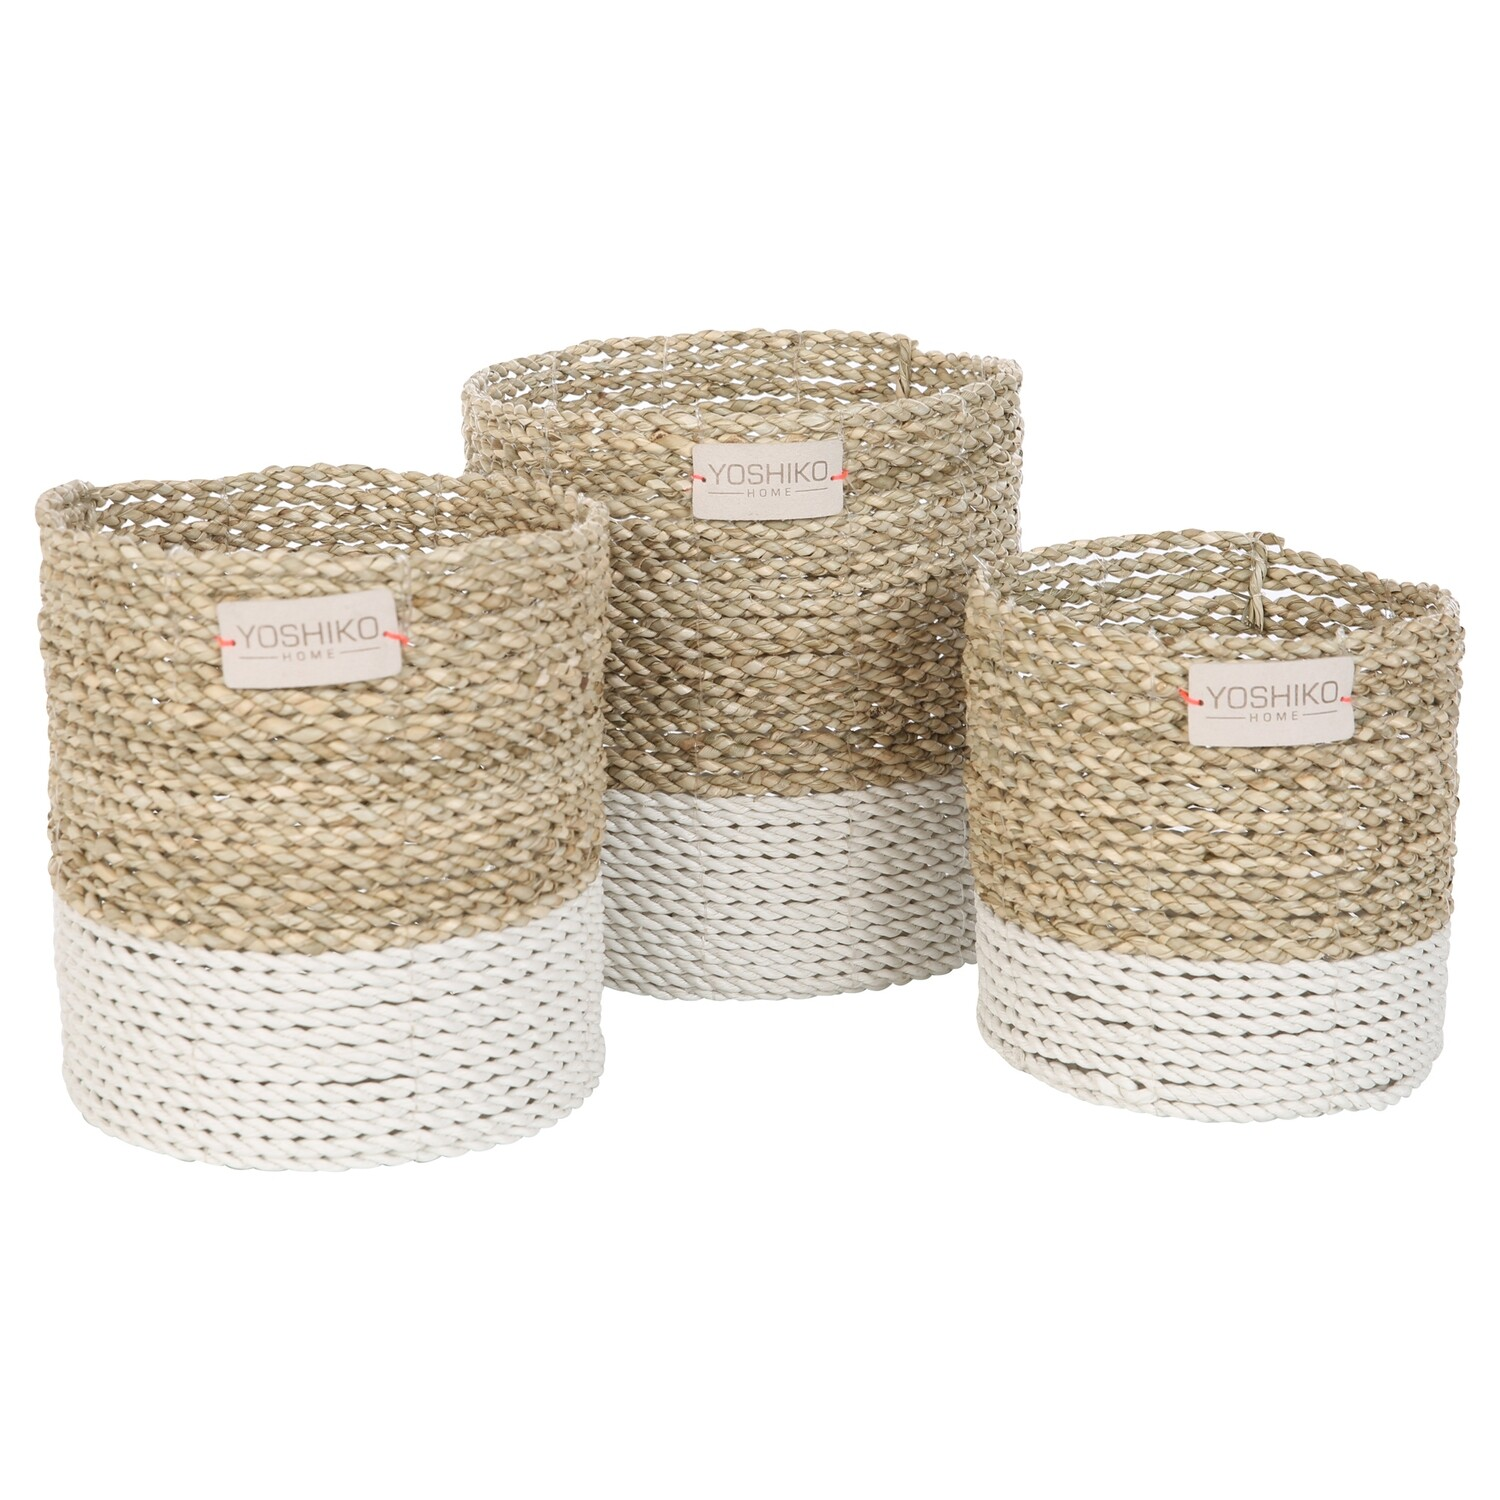 Seagrass Basket Small - White/Natural